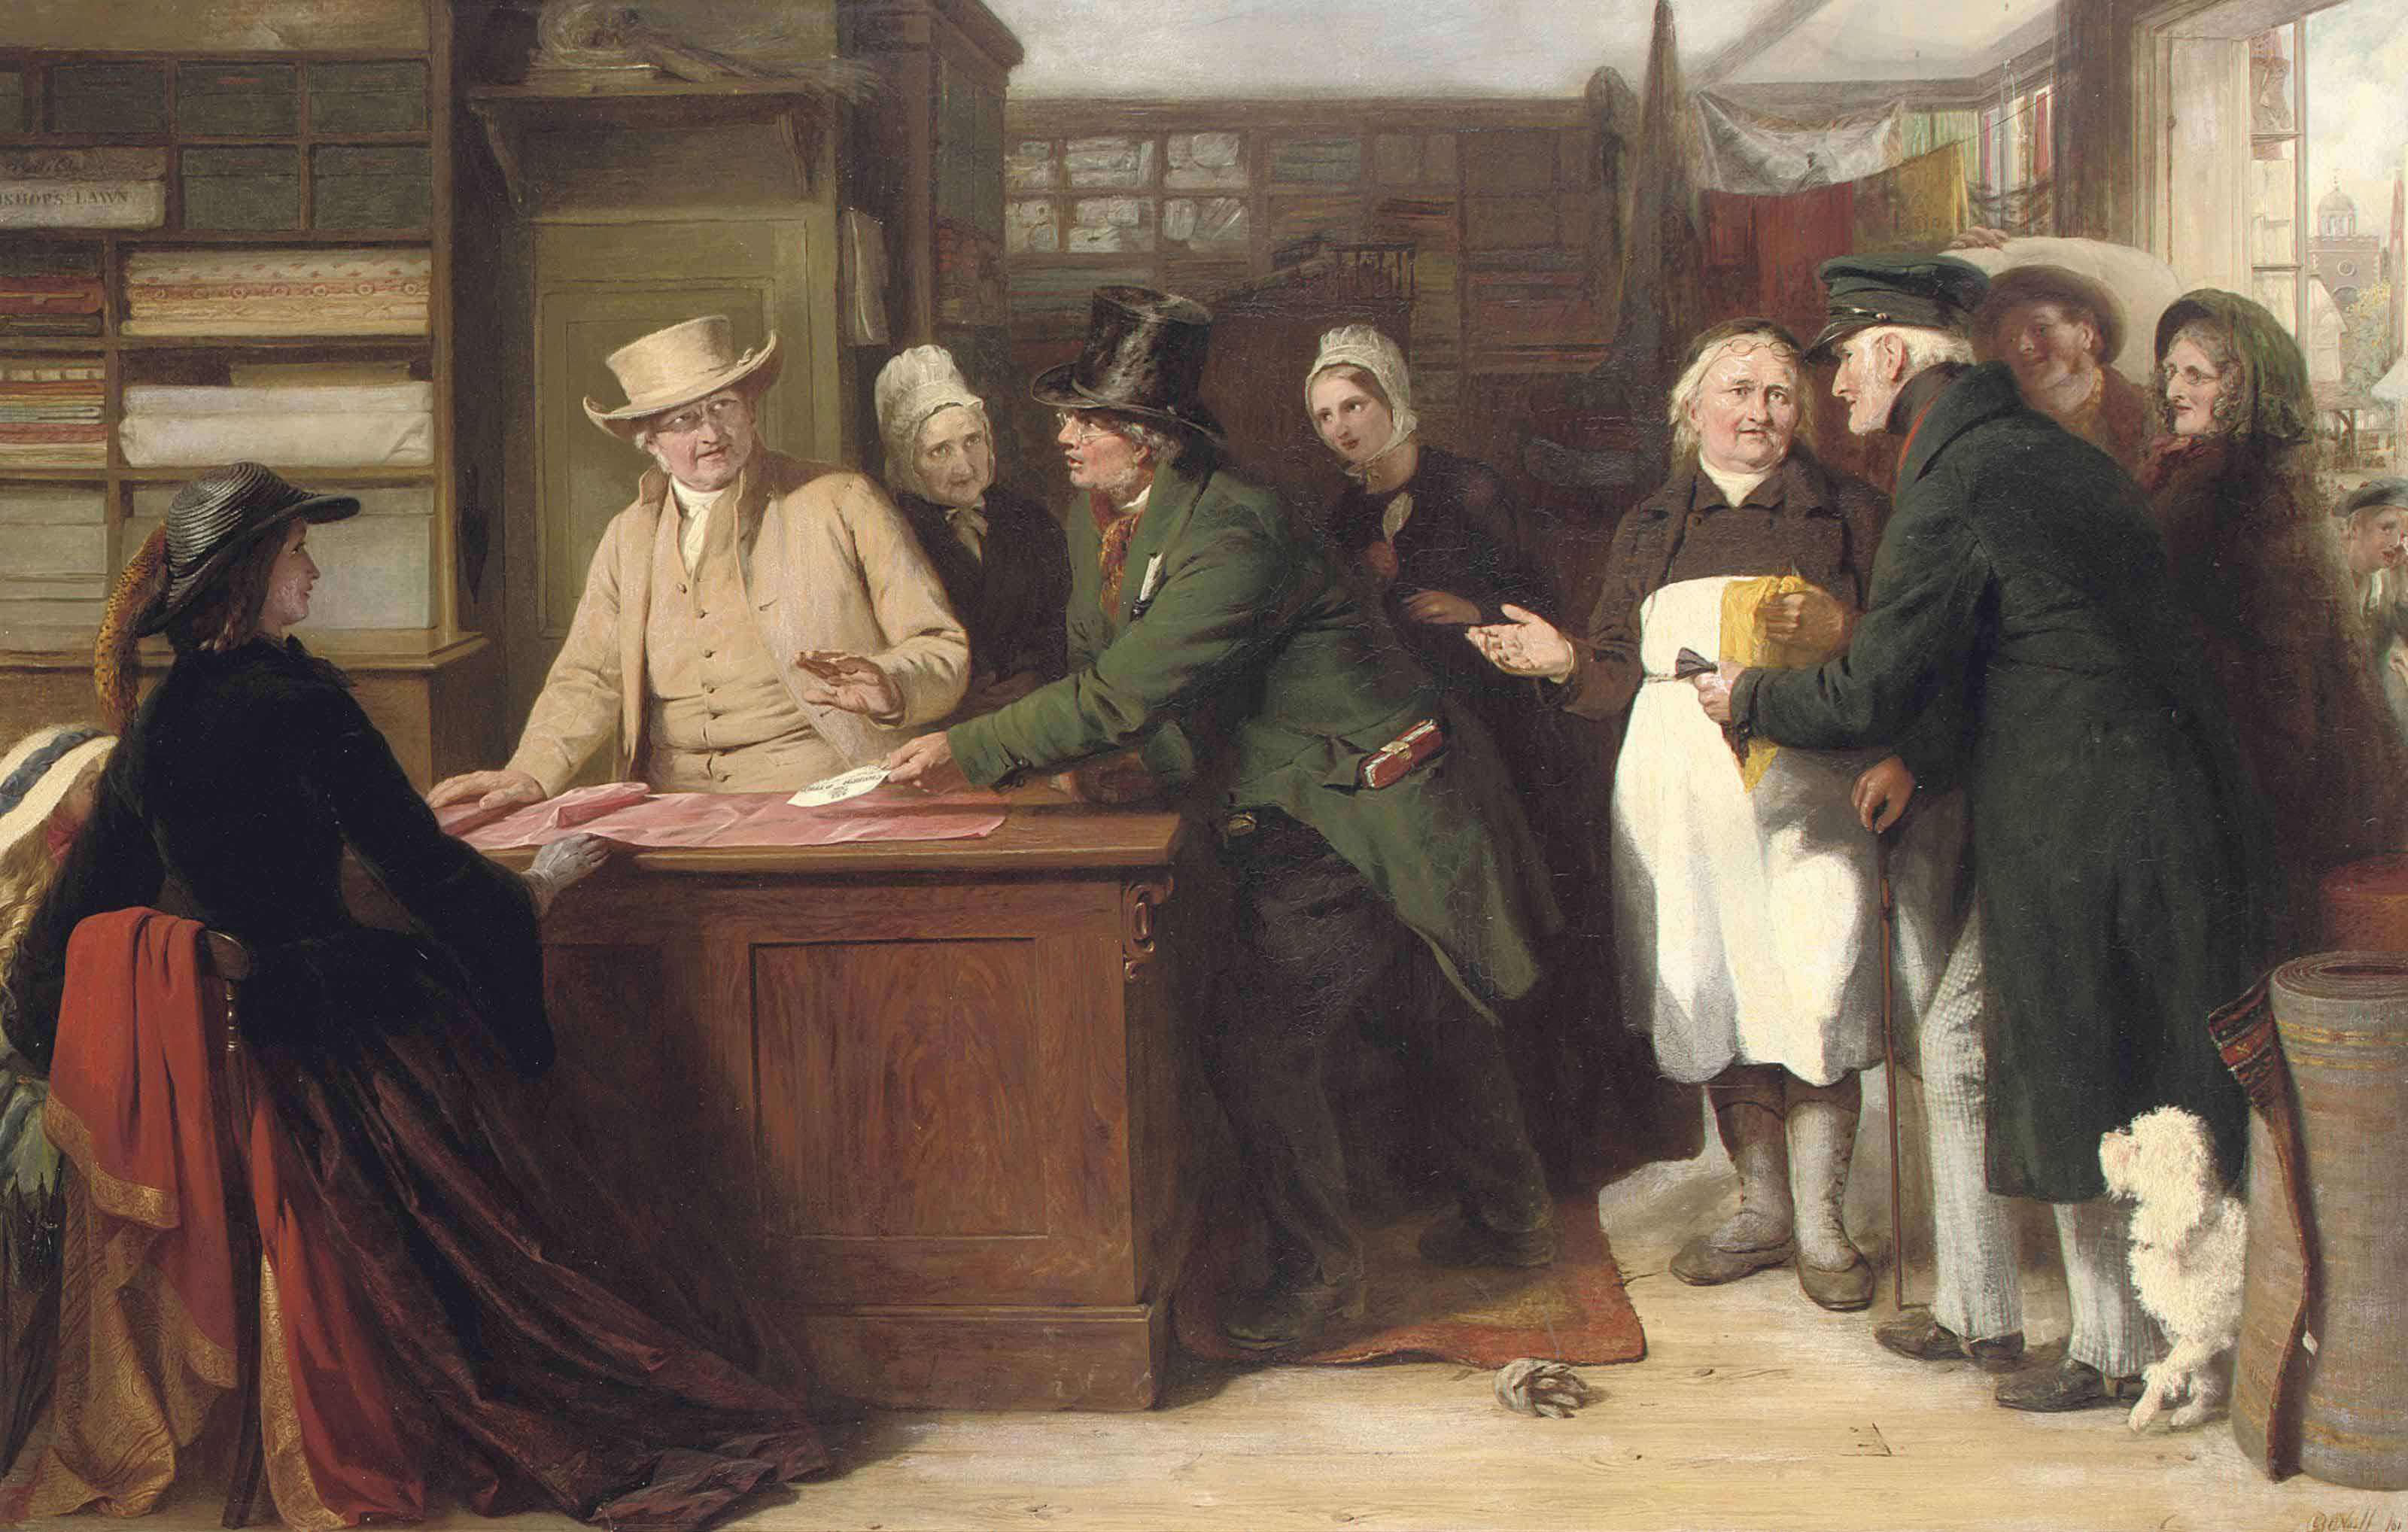 The Quaker and the Tax-Gatherer